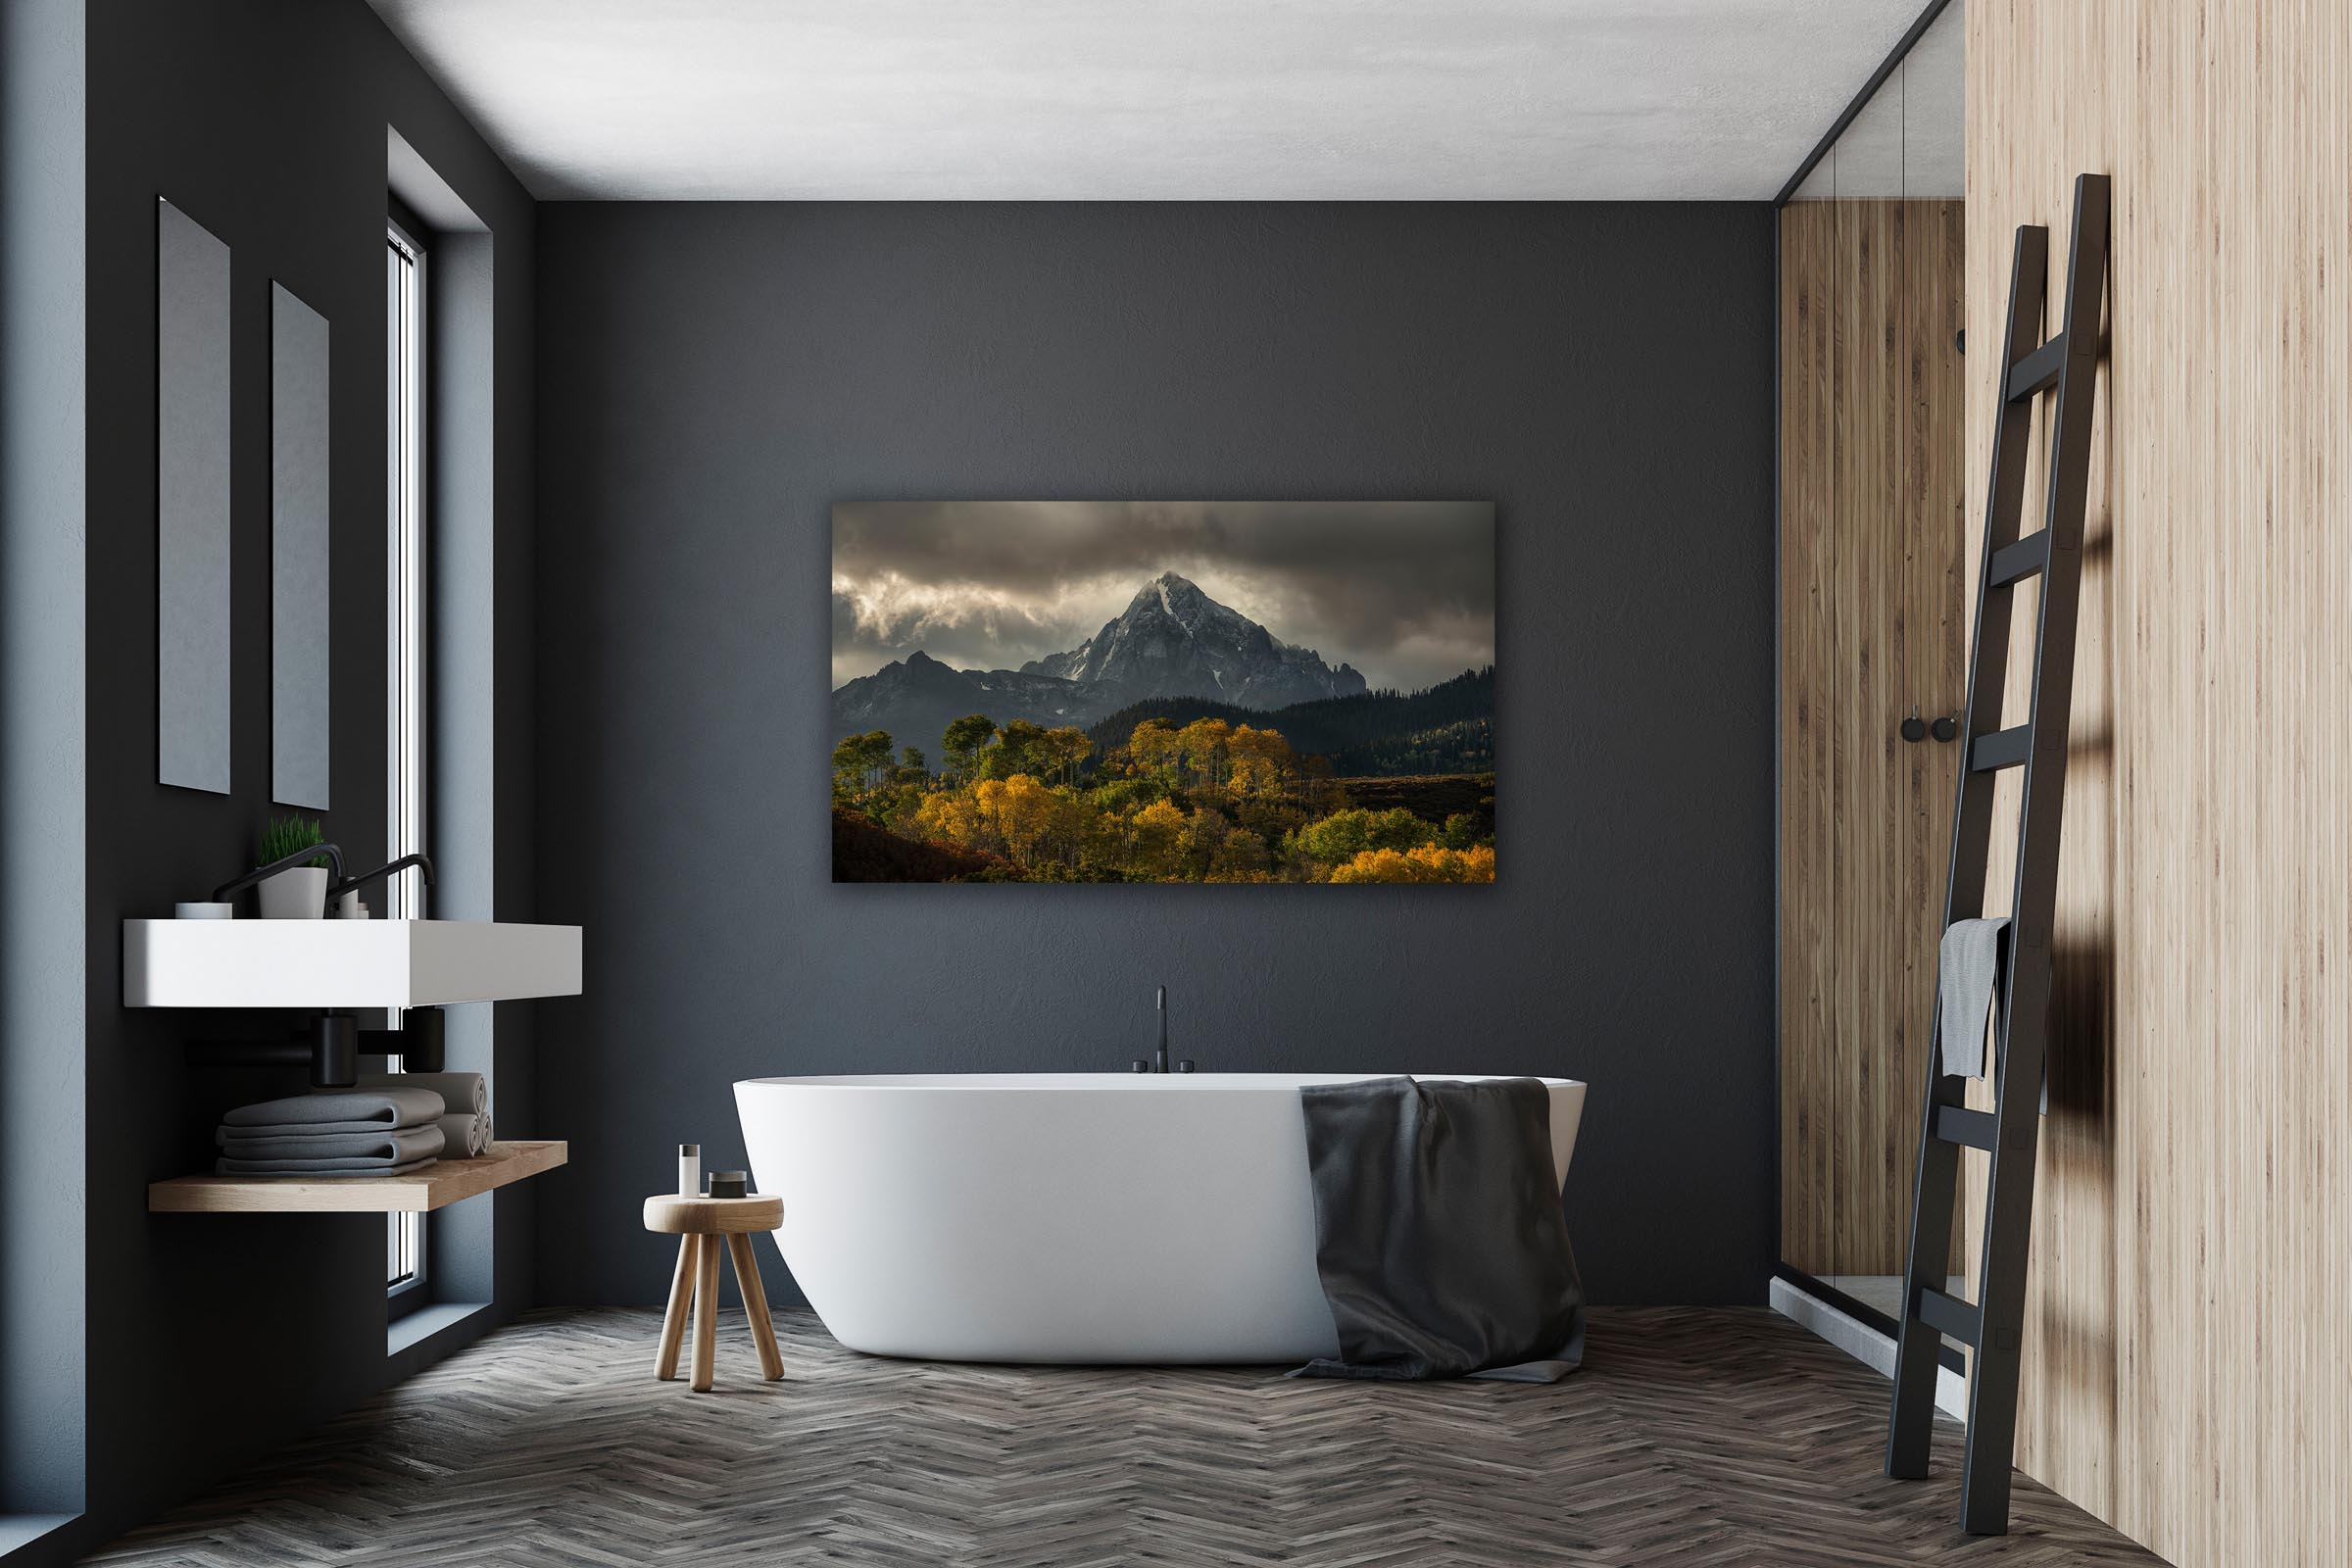 Wall art of Mt Sneffels in Ouray, Colorado by Brent Goldman Photography